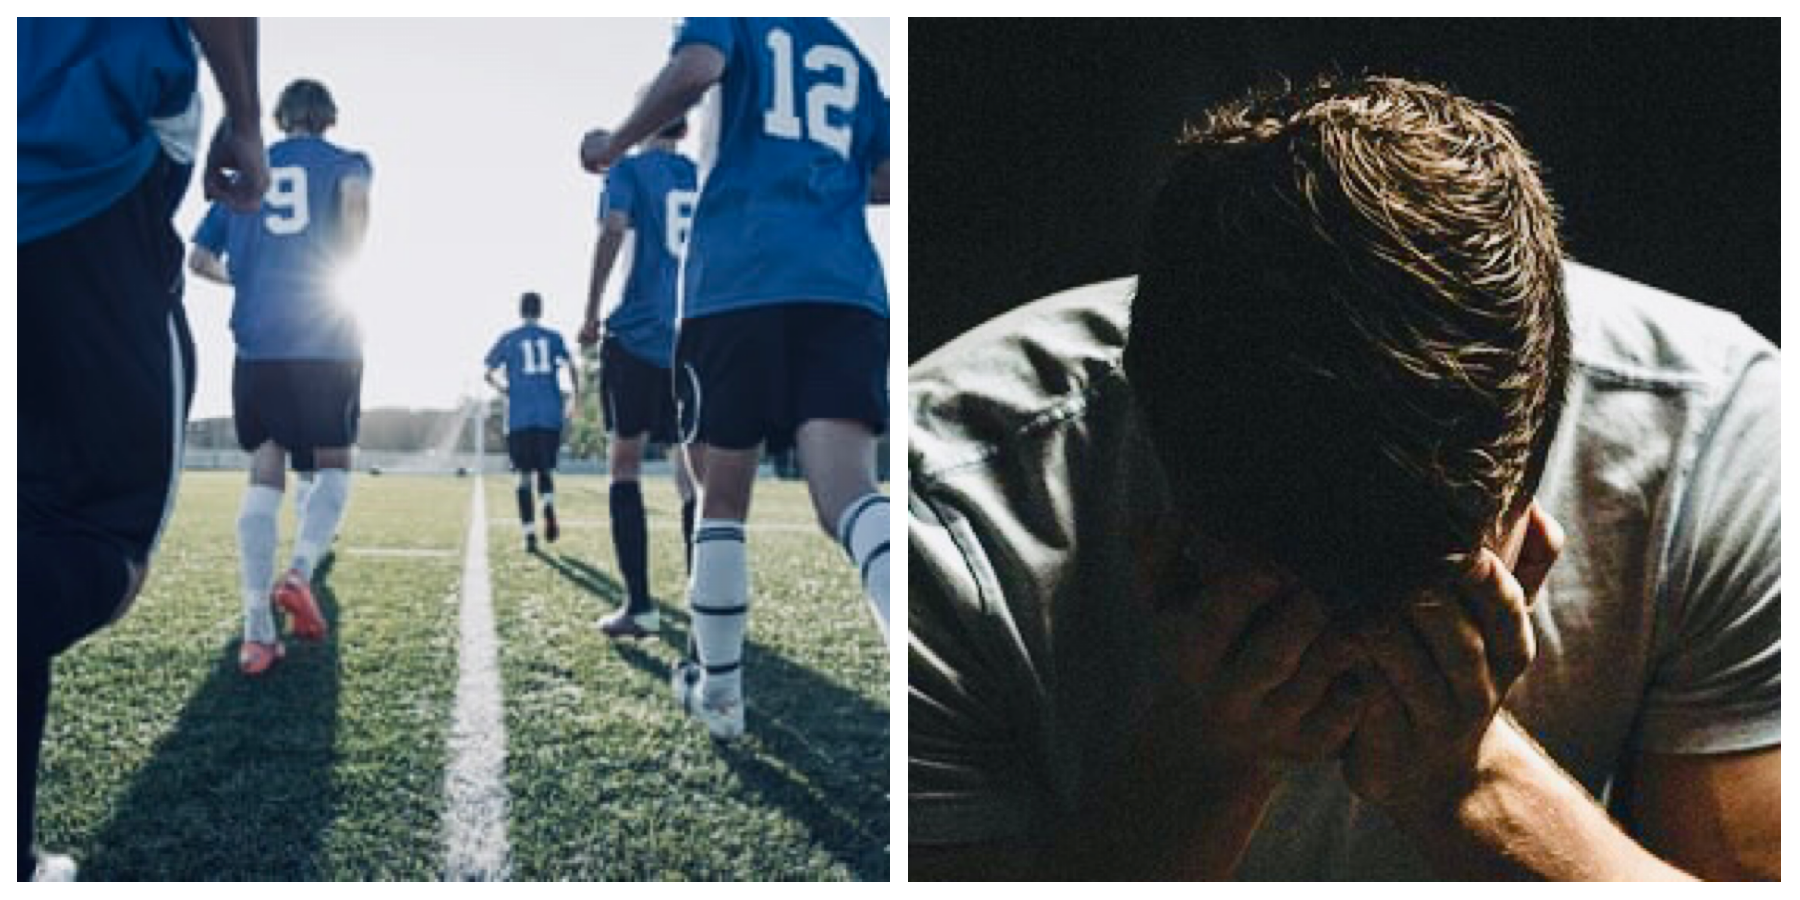 Training Ground Guru | Lack of psychological support for injured players deemed 'neglectful'